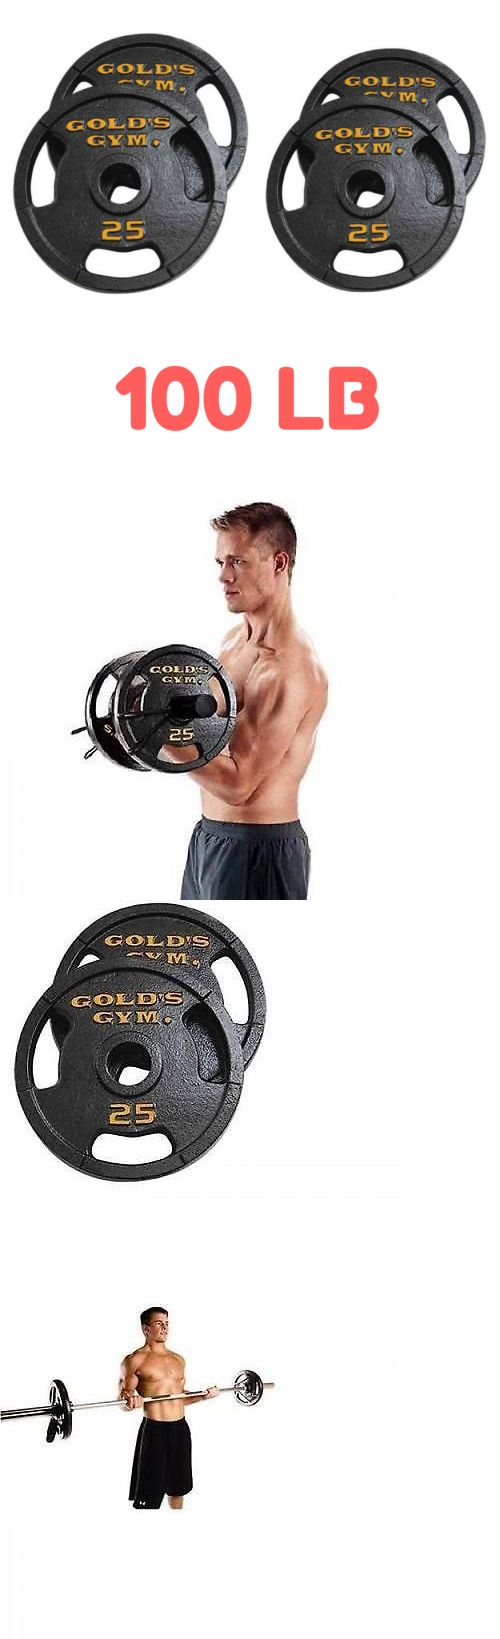 Weight Plates 179817: Olympic Cast Iron Weight Plate Set Bundle 100 Lb Pound Exercise Lifting Gold Gym -> BUY IT NOW ONLY: $115.25 on eBay!